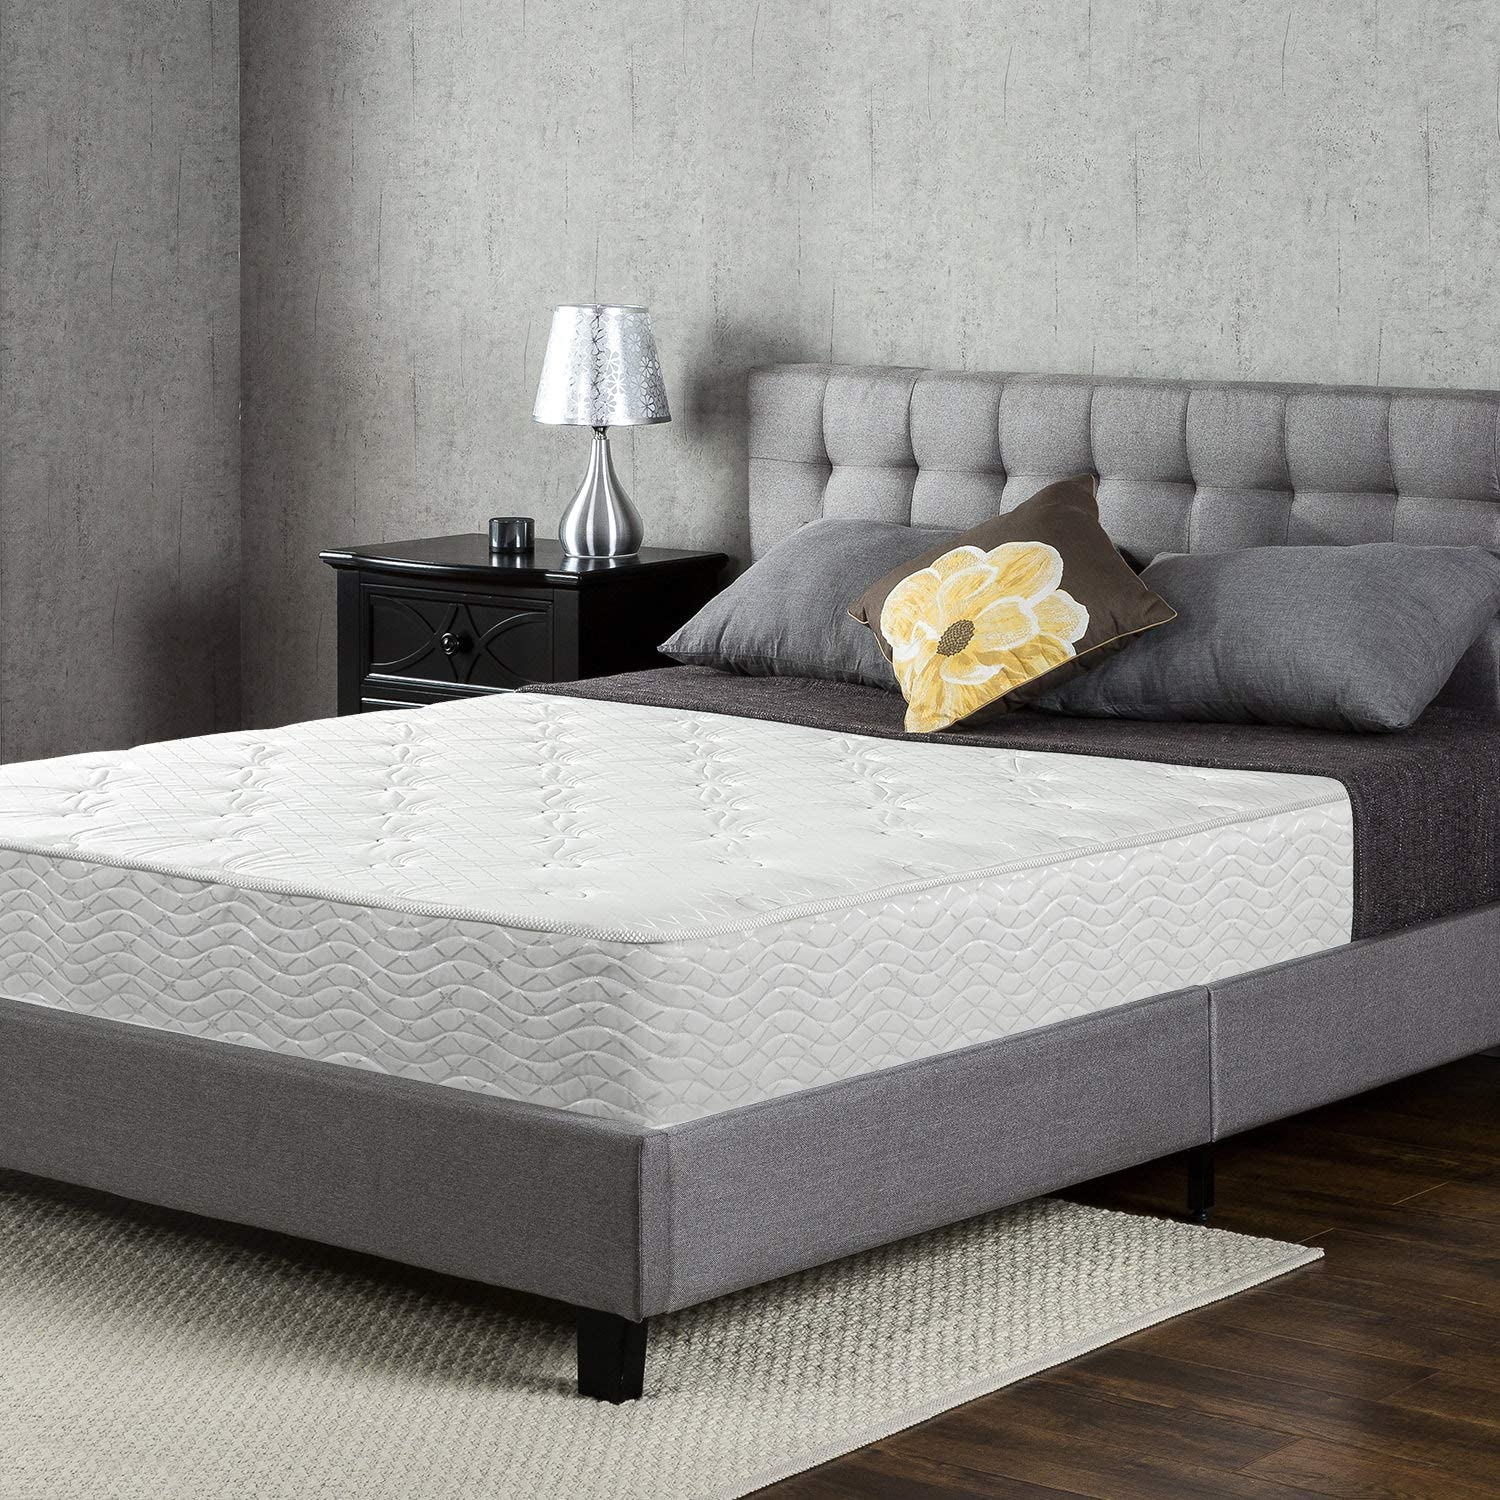 Sleep Revolution 10 iCoil Mattress, Twin